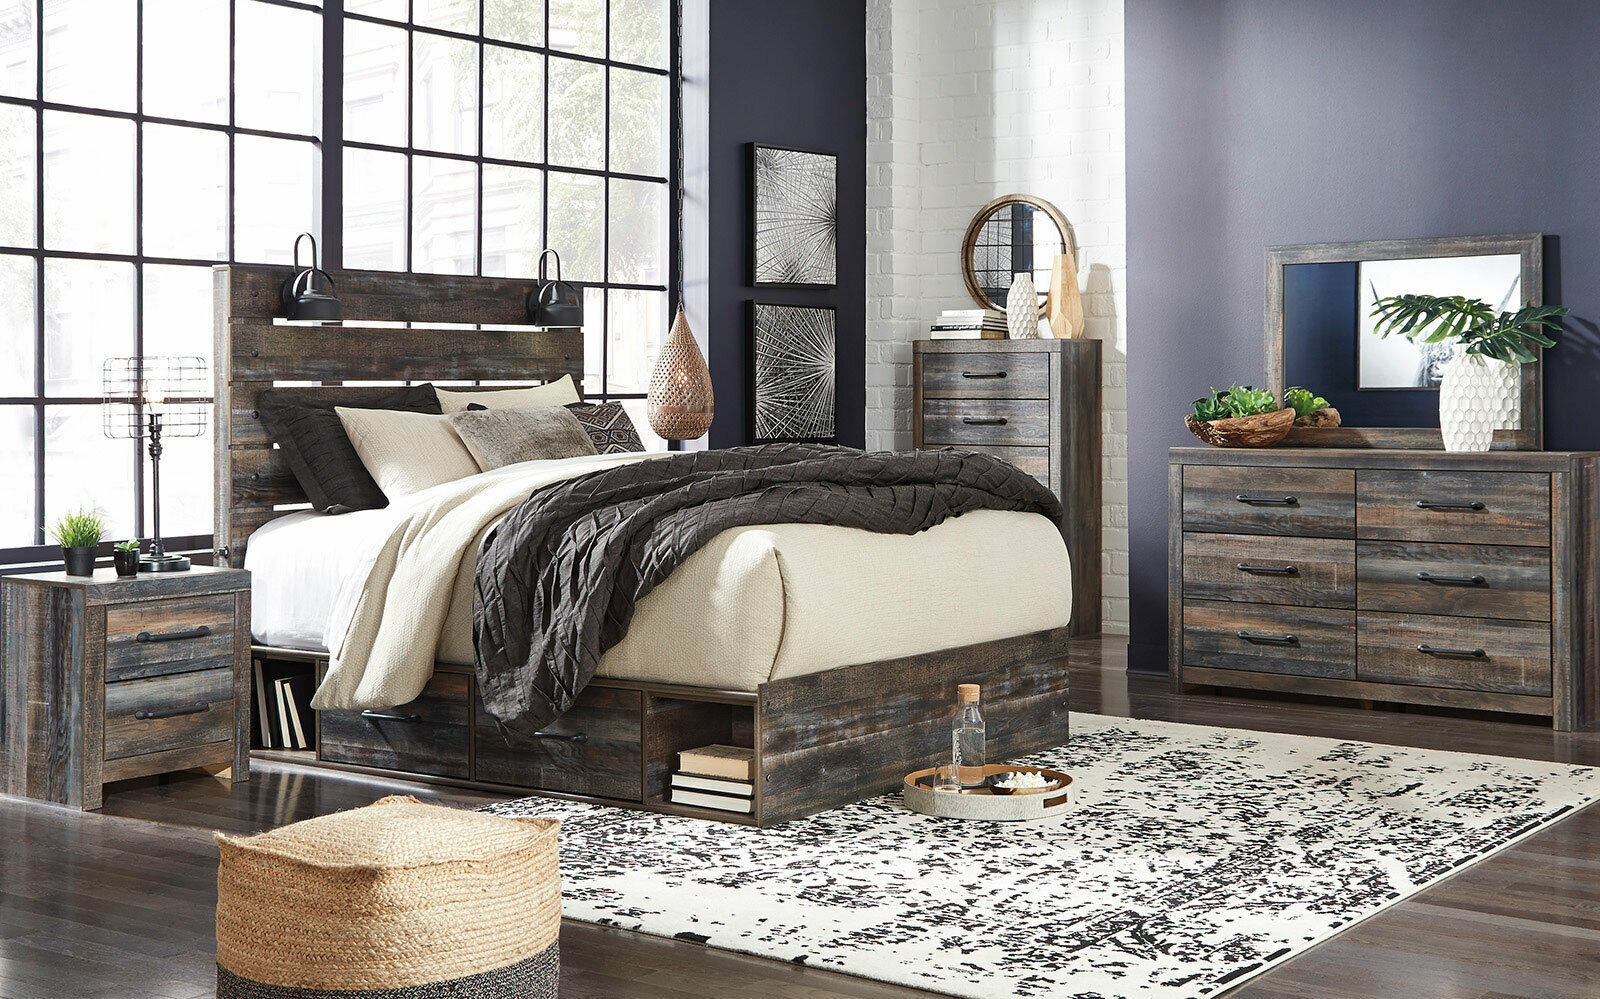 orion 5 pieces modern rustic brown bedroom suite with king